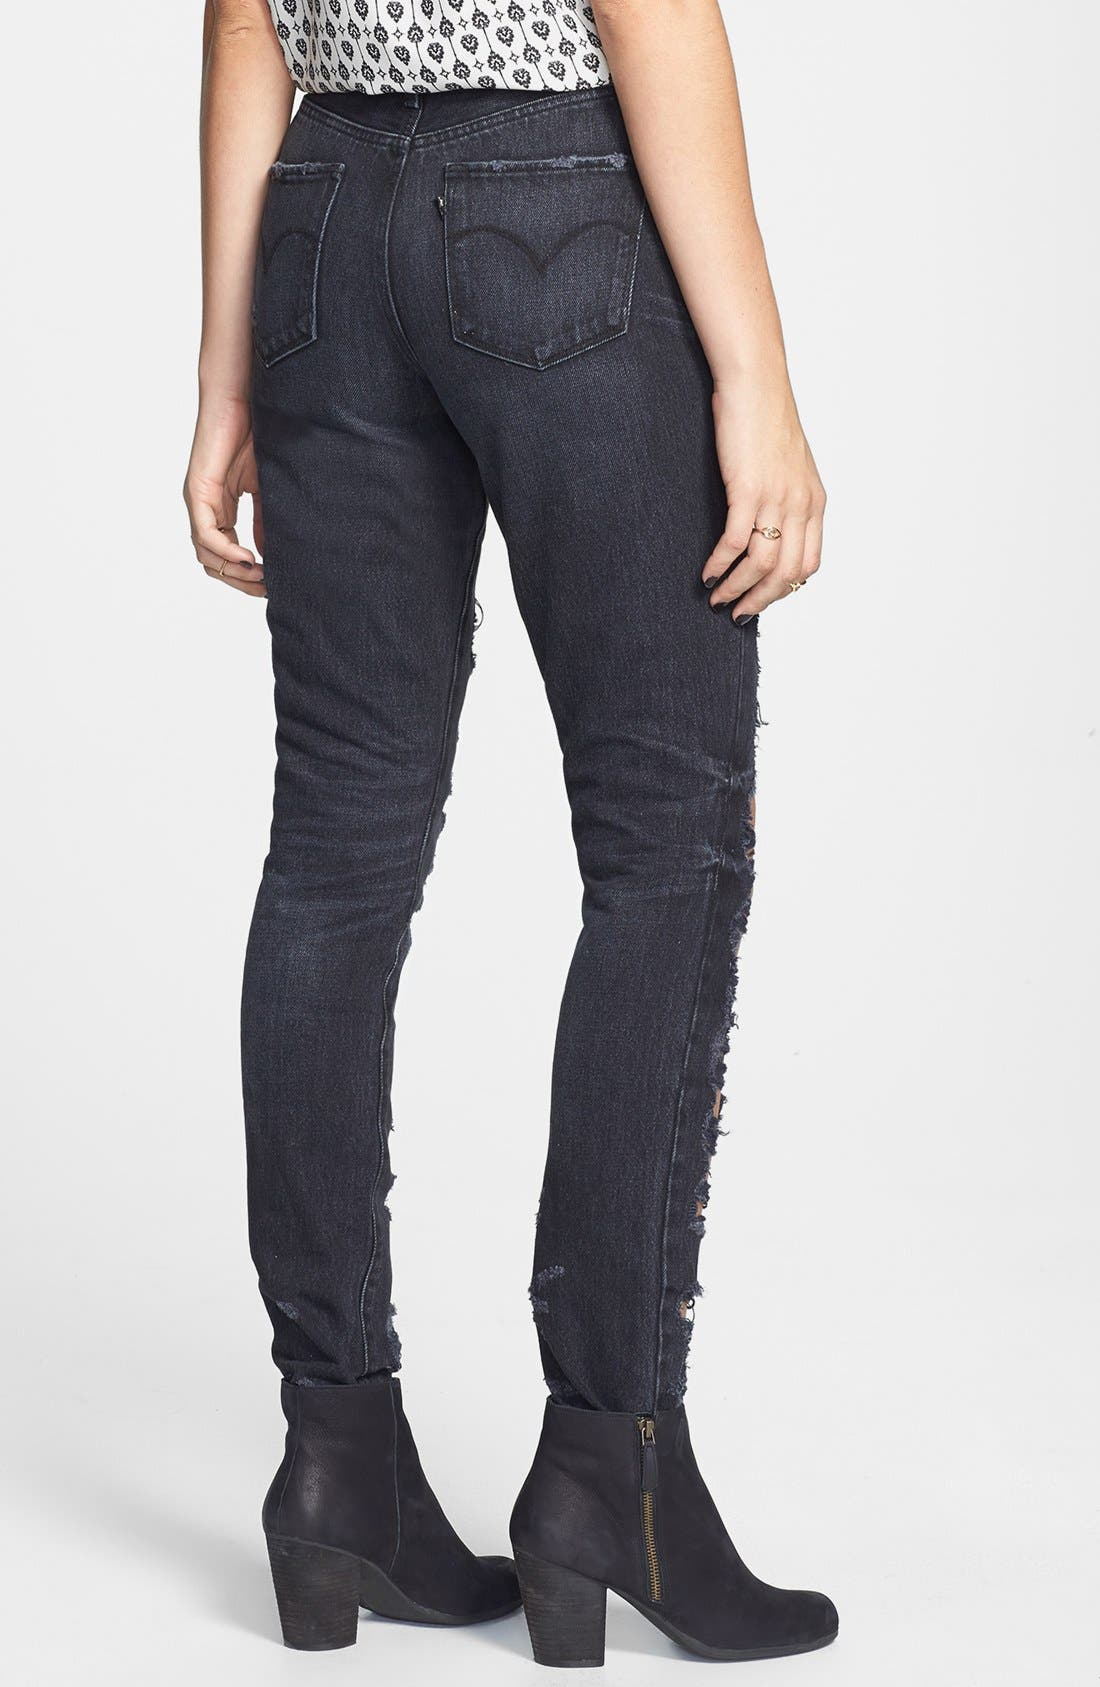 Alternate Image 2  - Levi's® Shredded High Waist Skinny Jeans (Black)